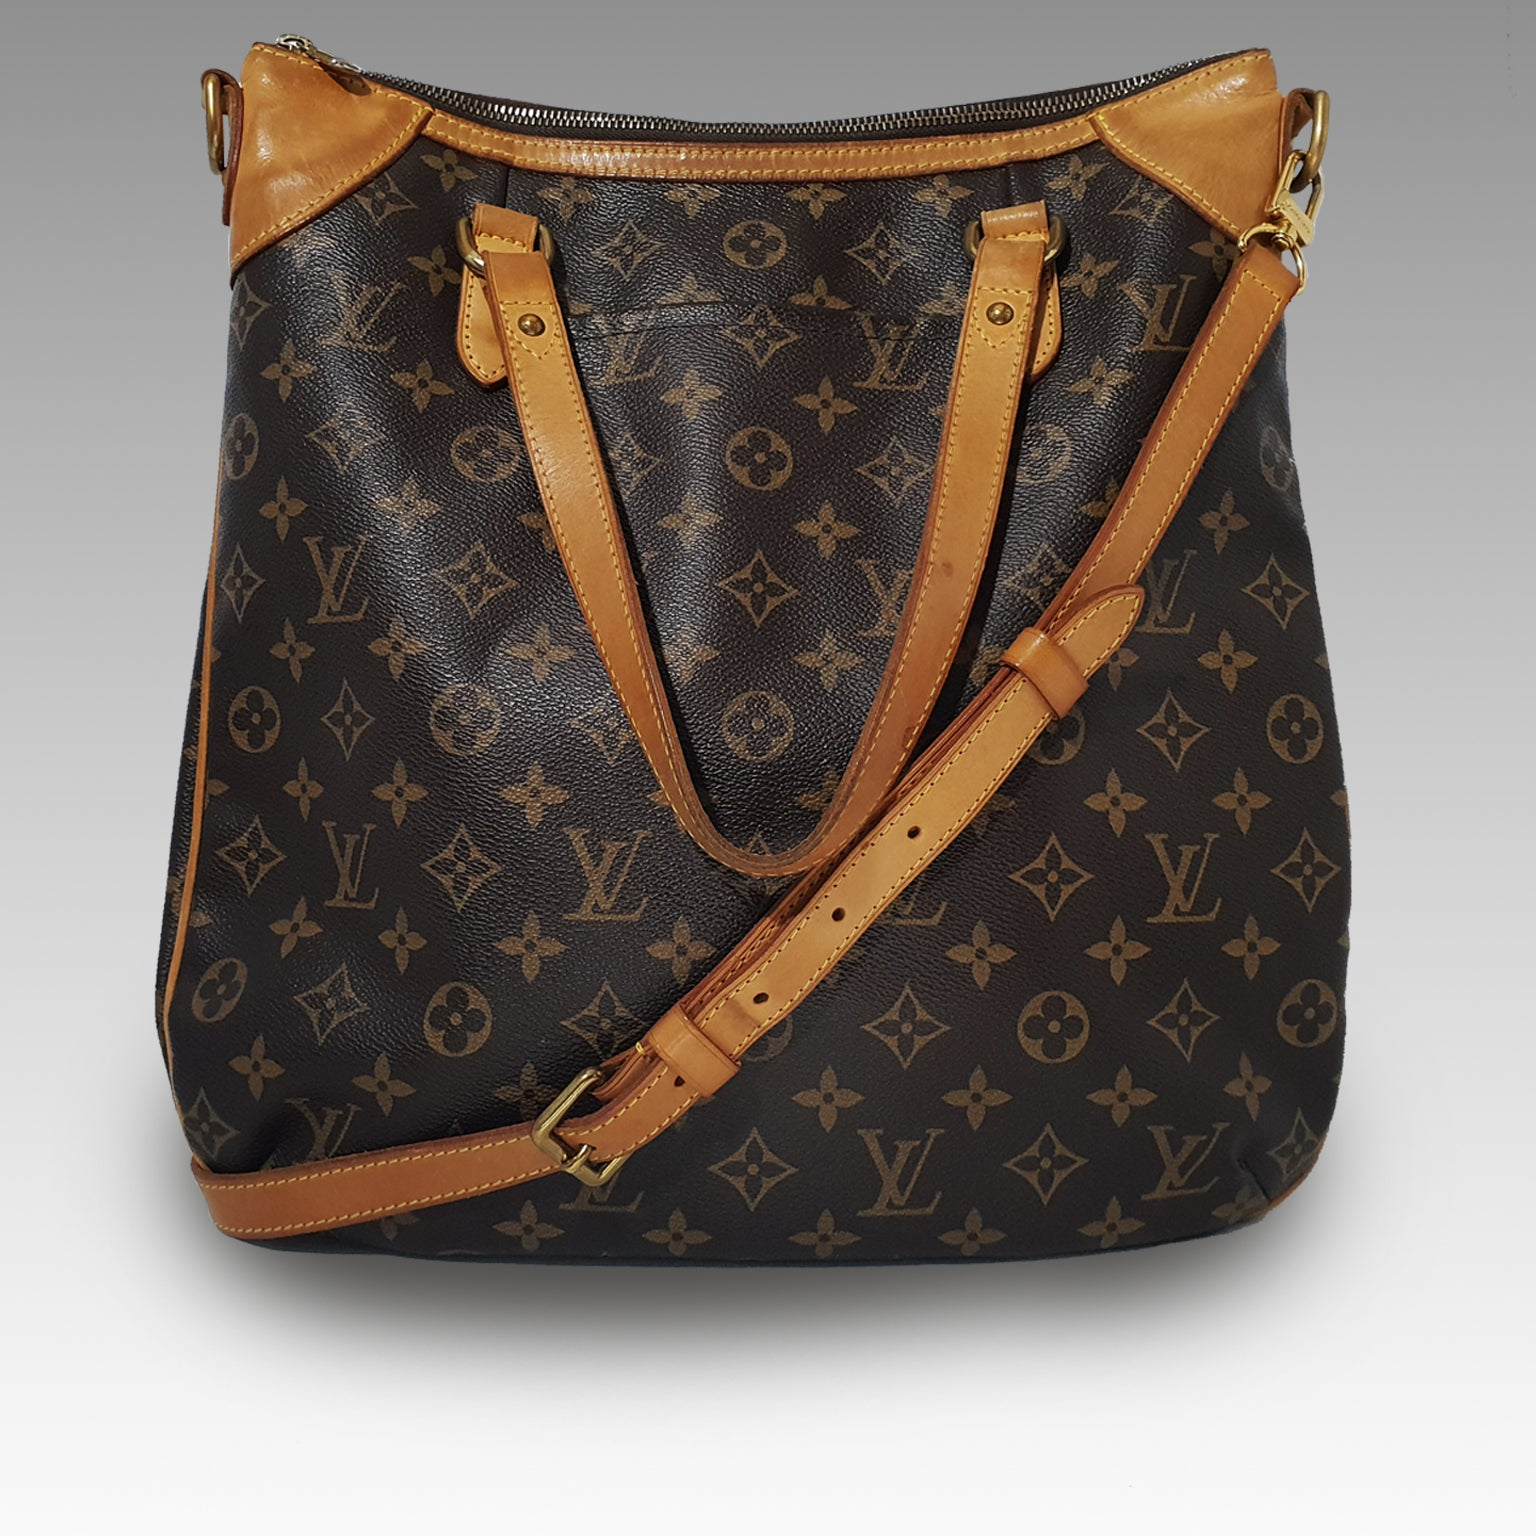 Louis Vuitton, Louis Vuitton Odeon GM Bag in Monogram Canvas - CHLOEZACH